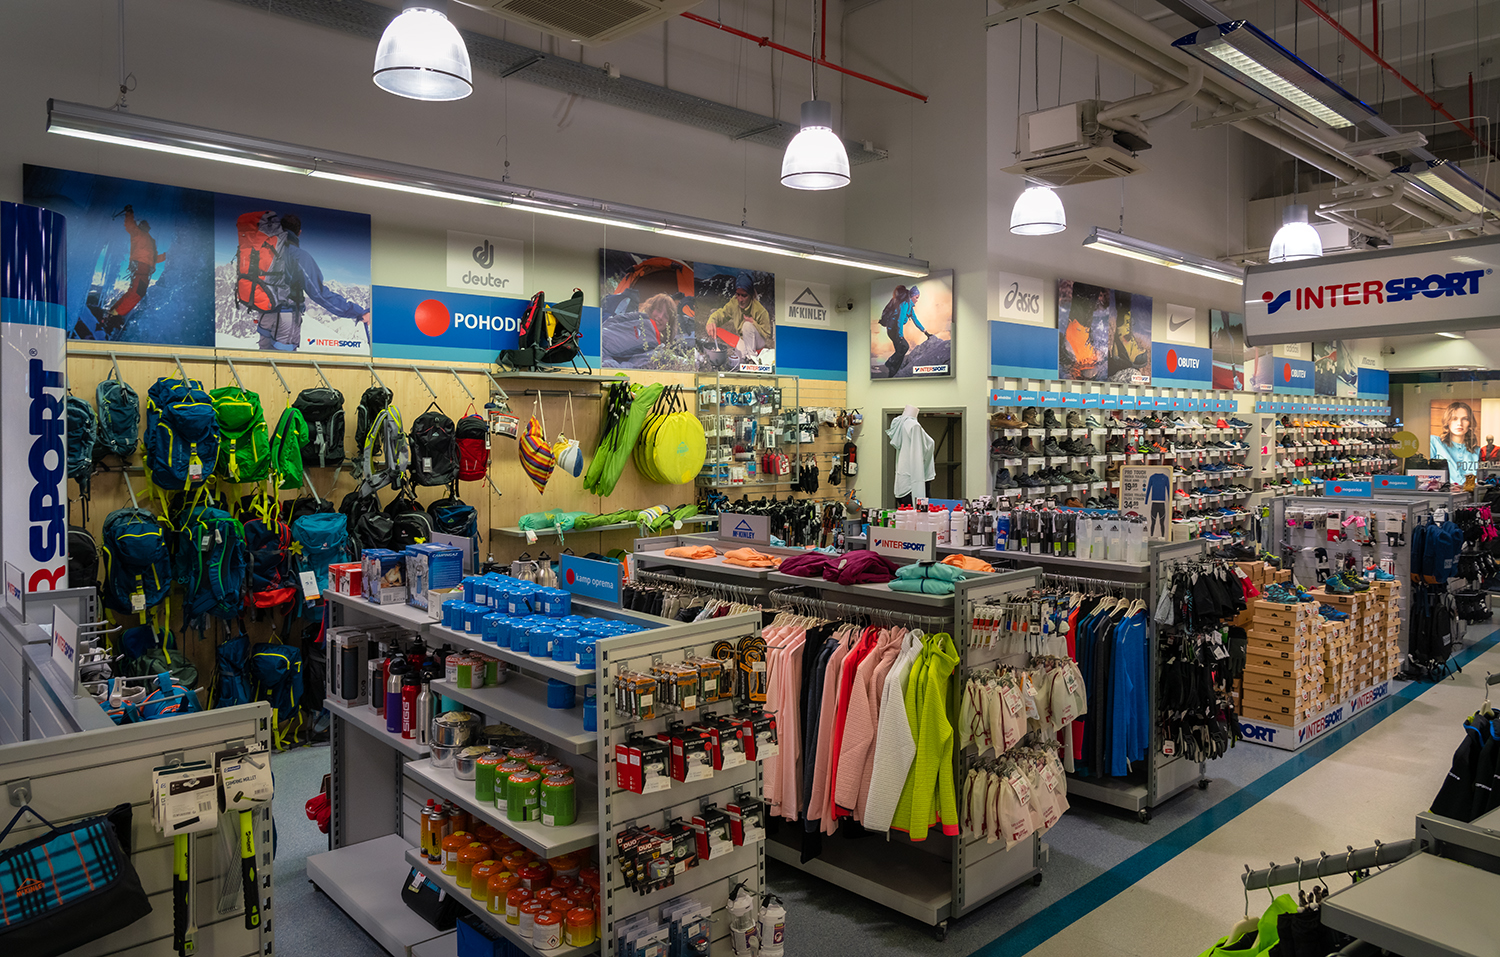 INTERSPORT POSTOJNA